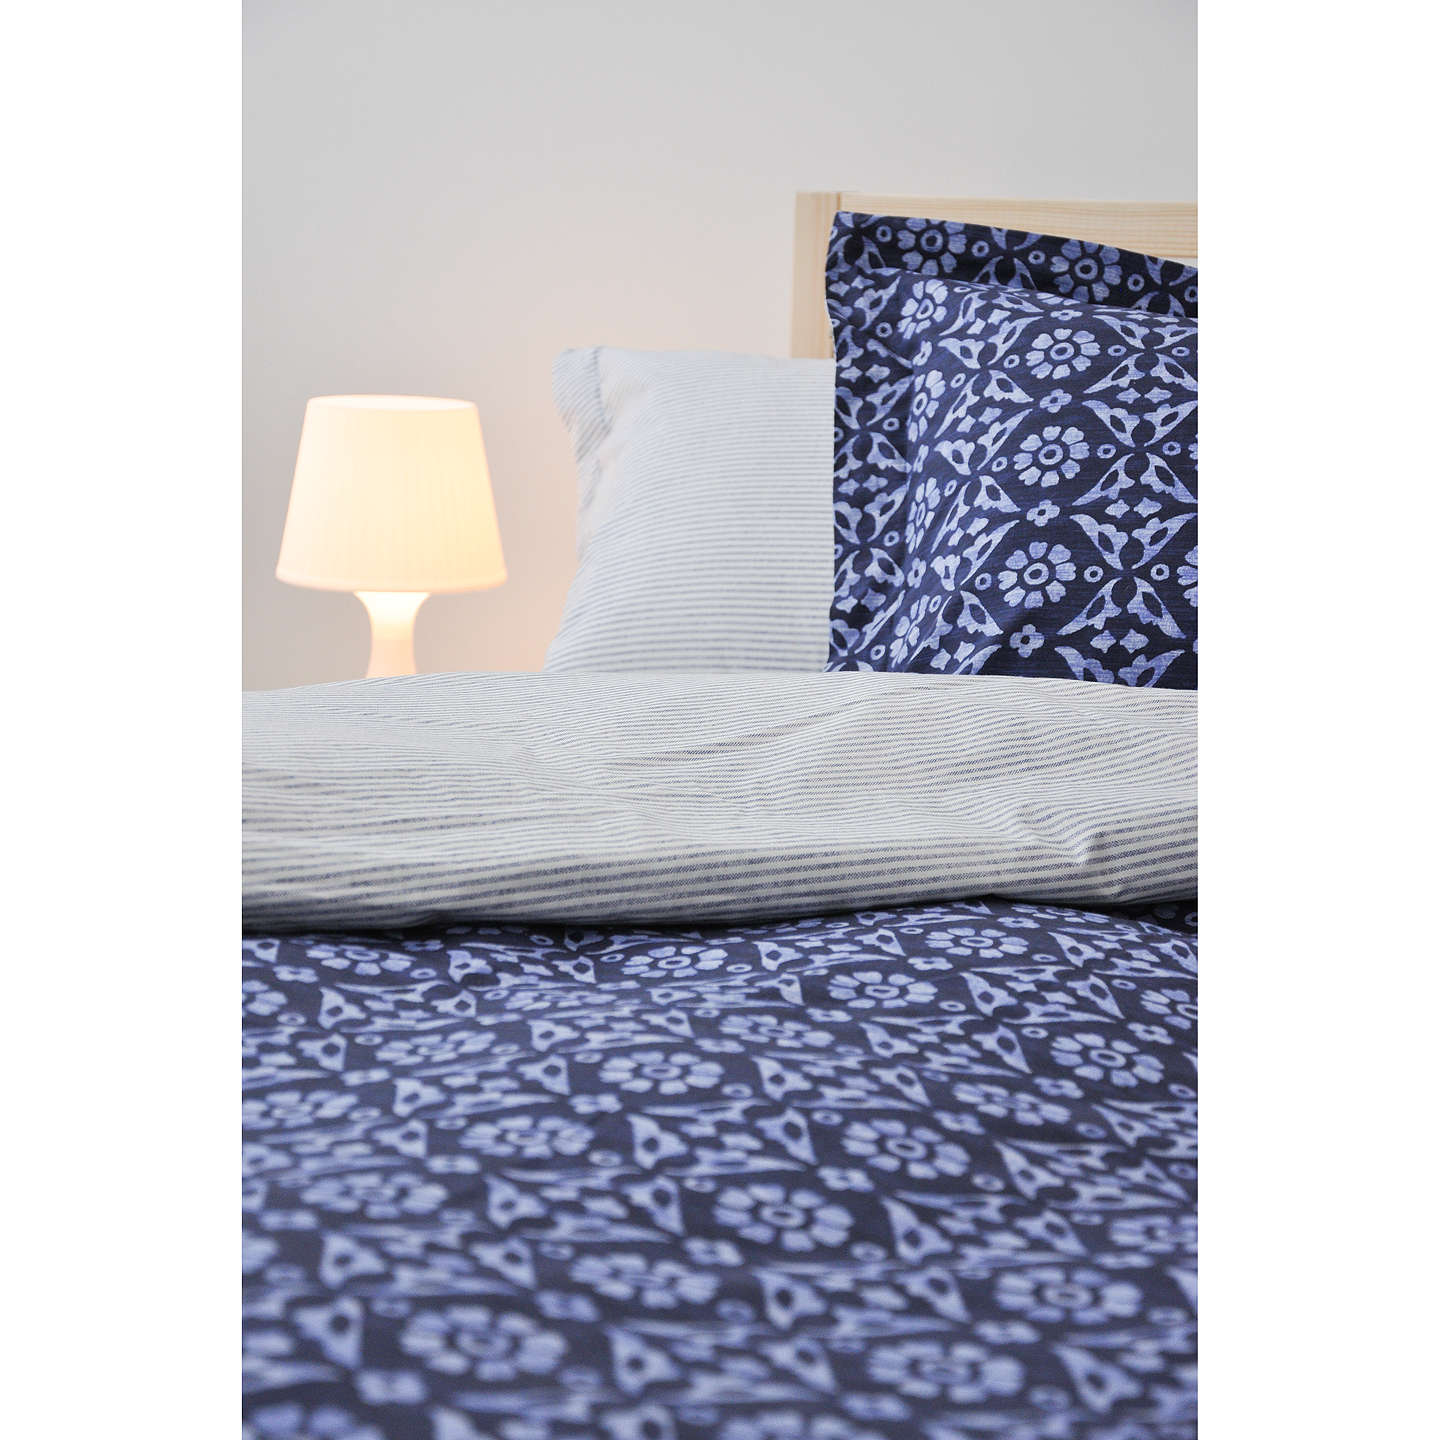 Amalia Home Collection Mares Cotton Bedding at John Lewis